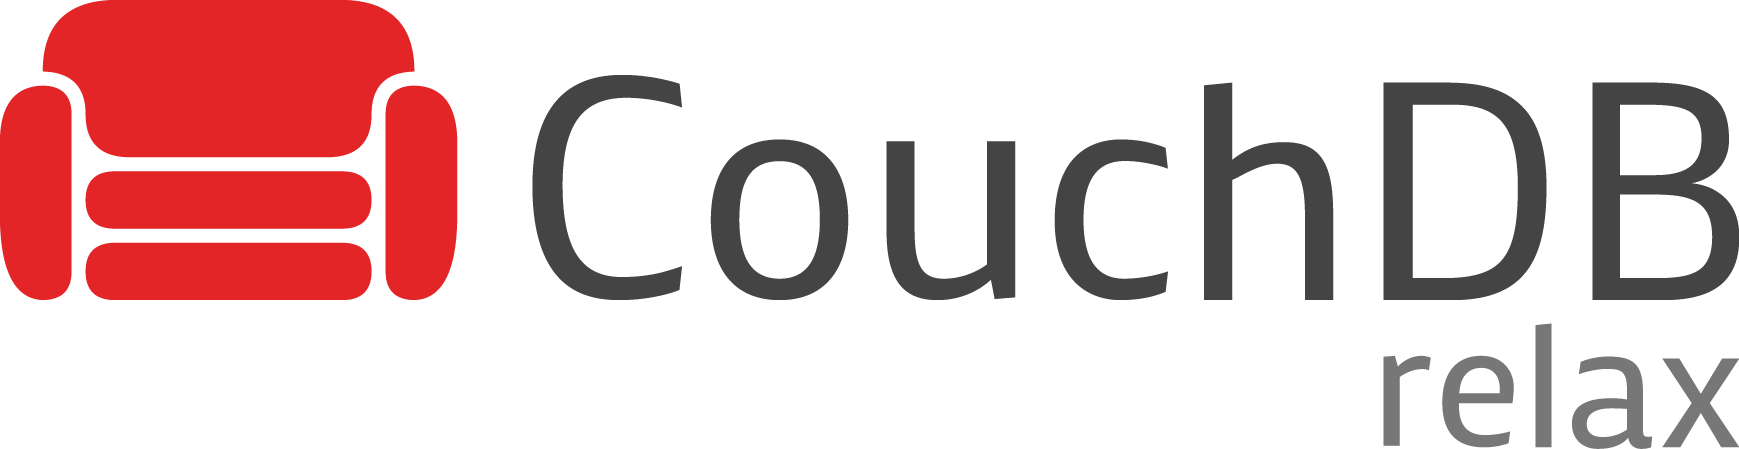 CounchDb Database Management System